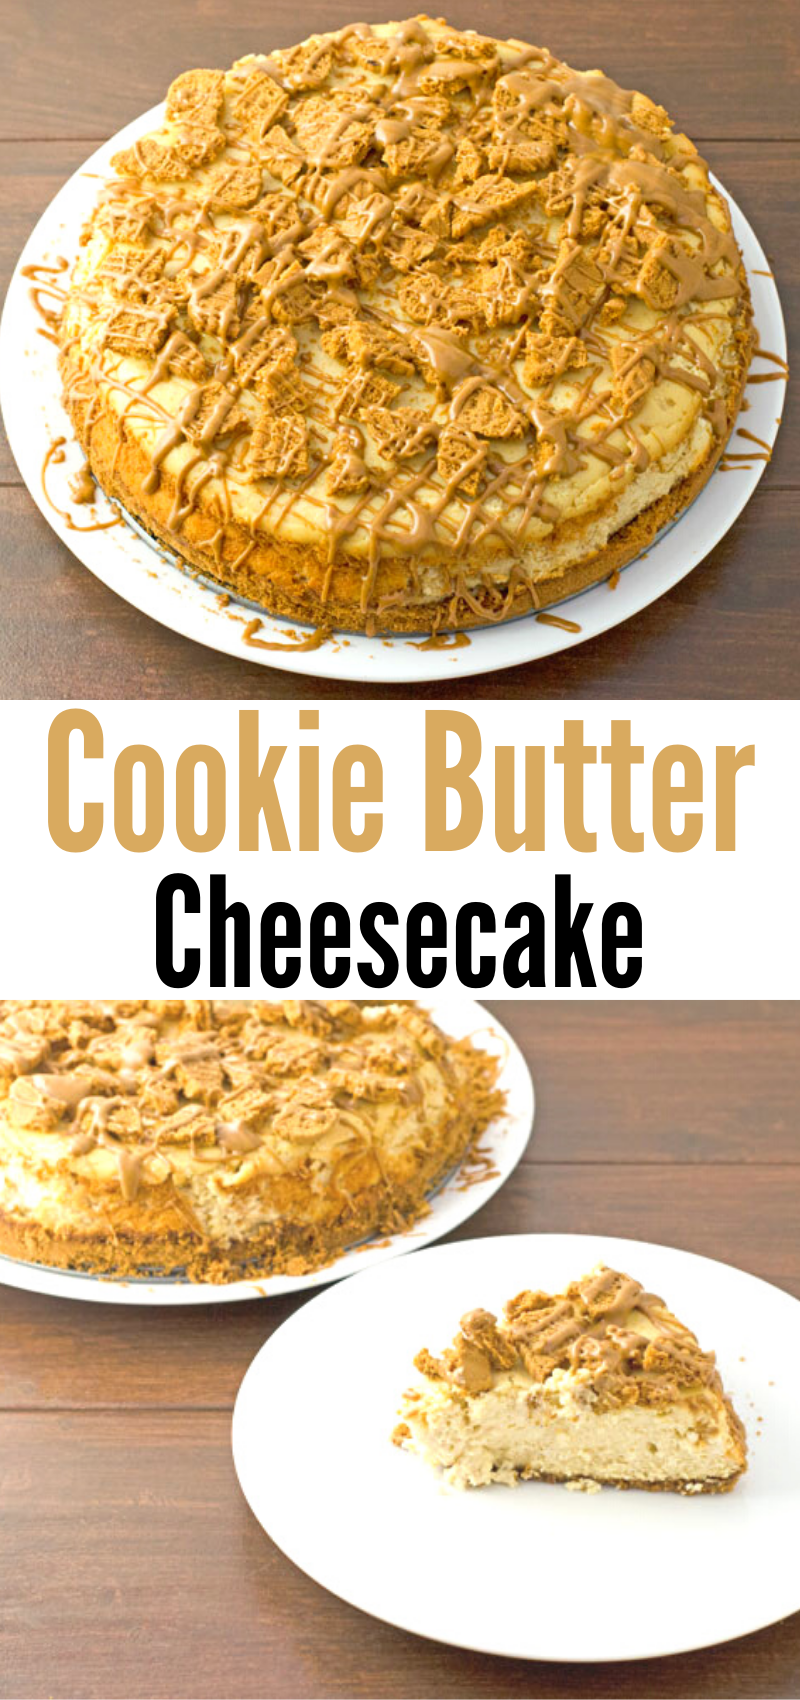 Cookie Butter Cheesecake Recipe Cheesecake Recipes Recipes Cheesecake